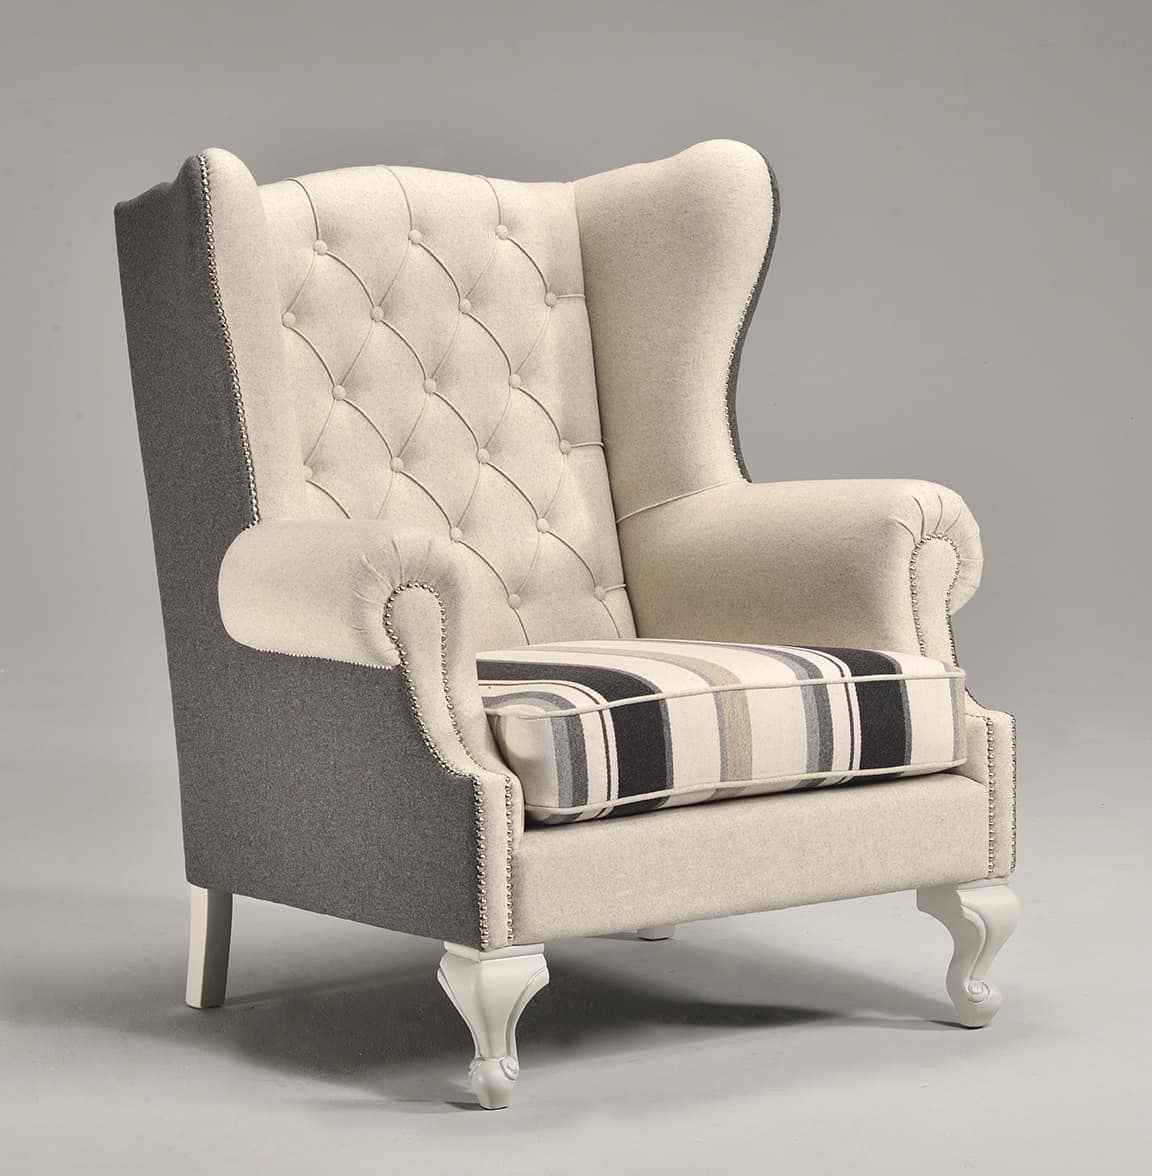 Luxurious armchair, high quilted back, for villas | IDFdesign